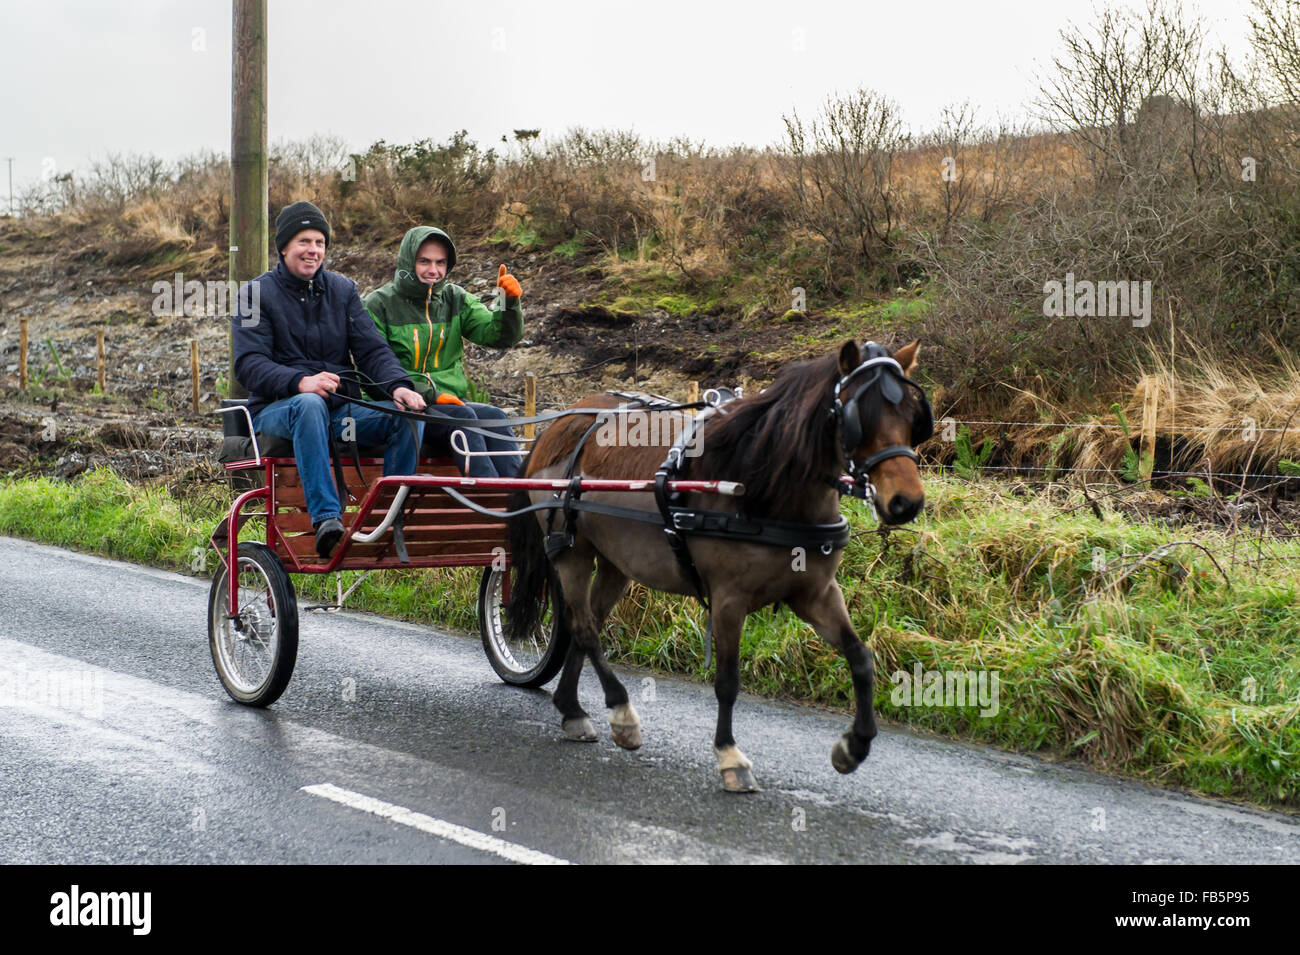 Drimoleague, Ireland. 10th January, 2016. Andy Collins, and his son John, are pictured driving Vinny O'Driscolls - Stock Image